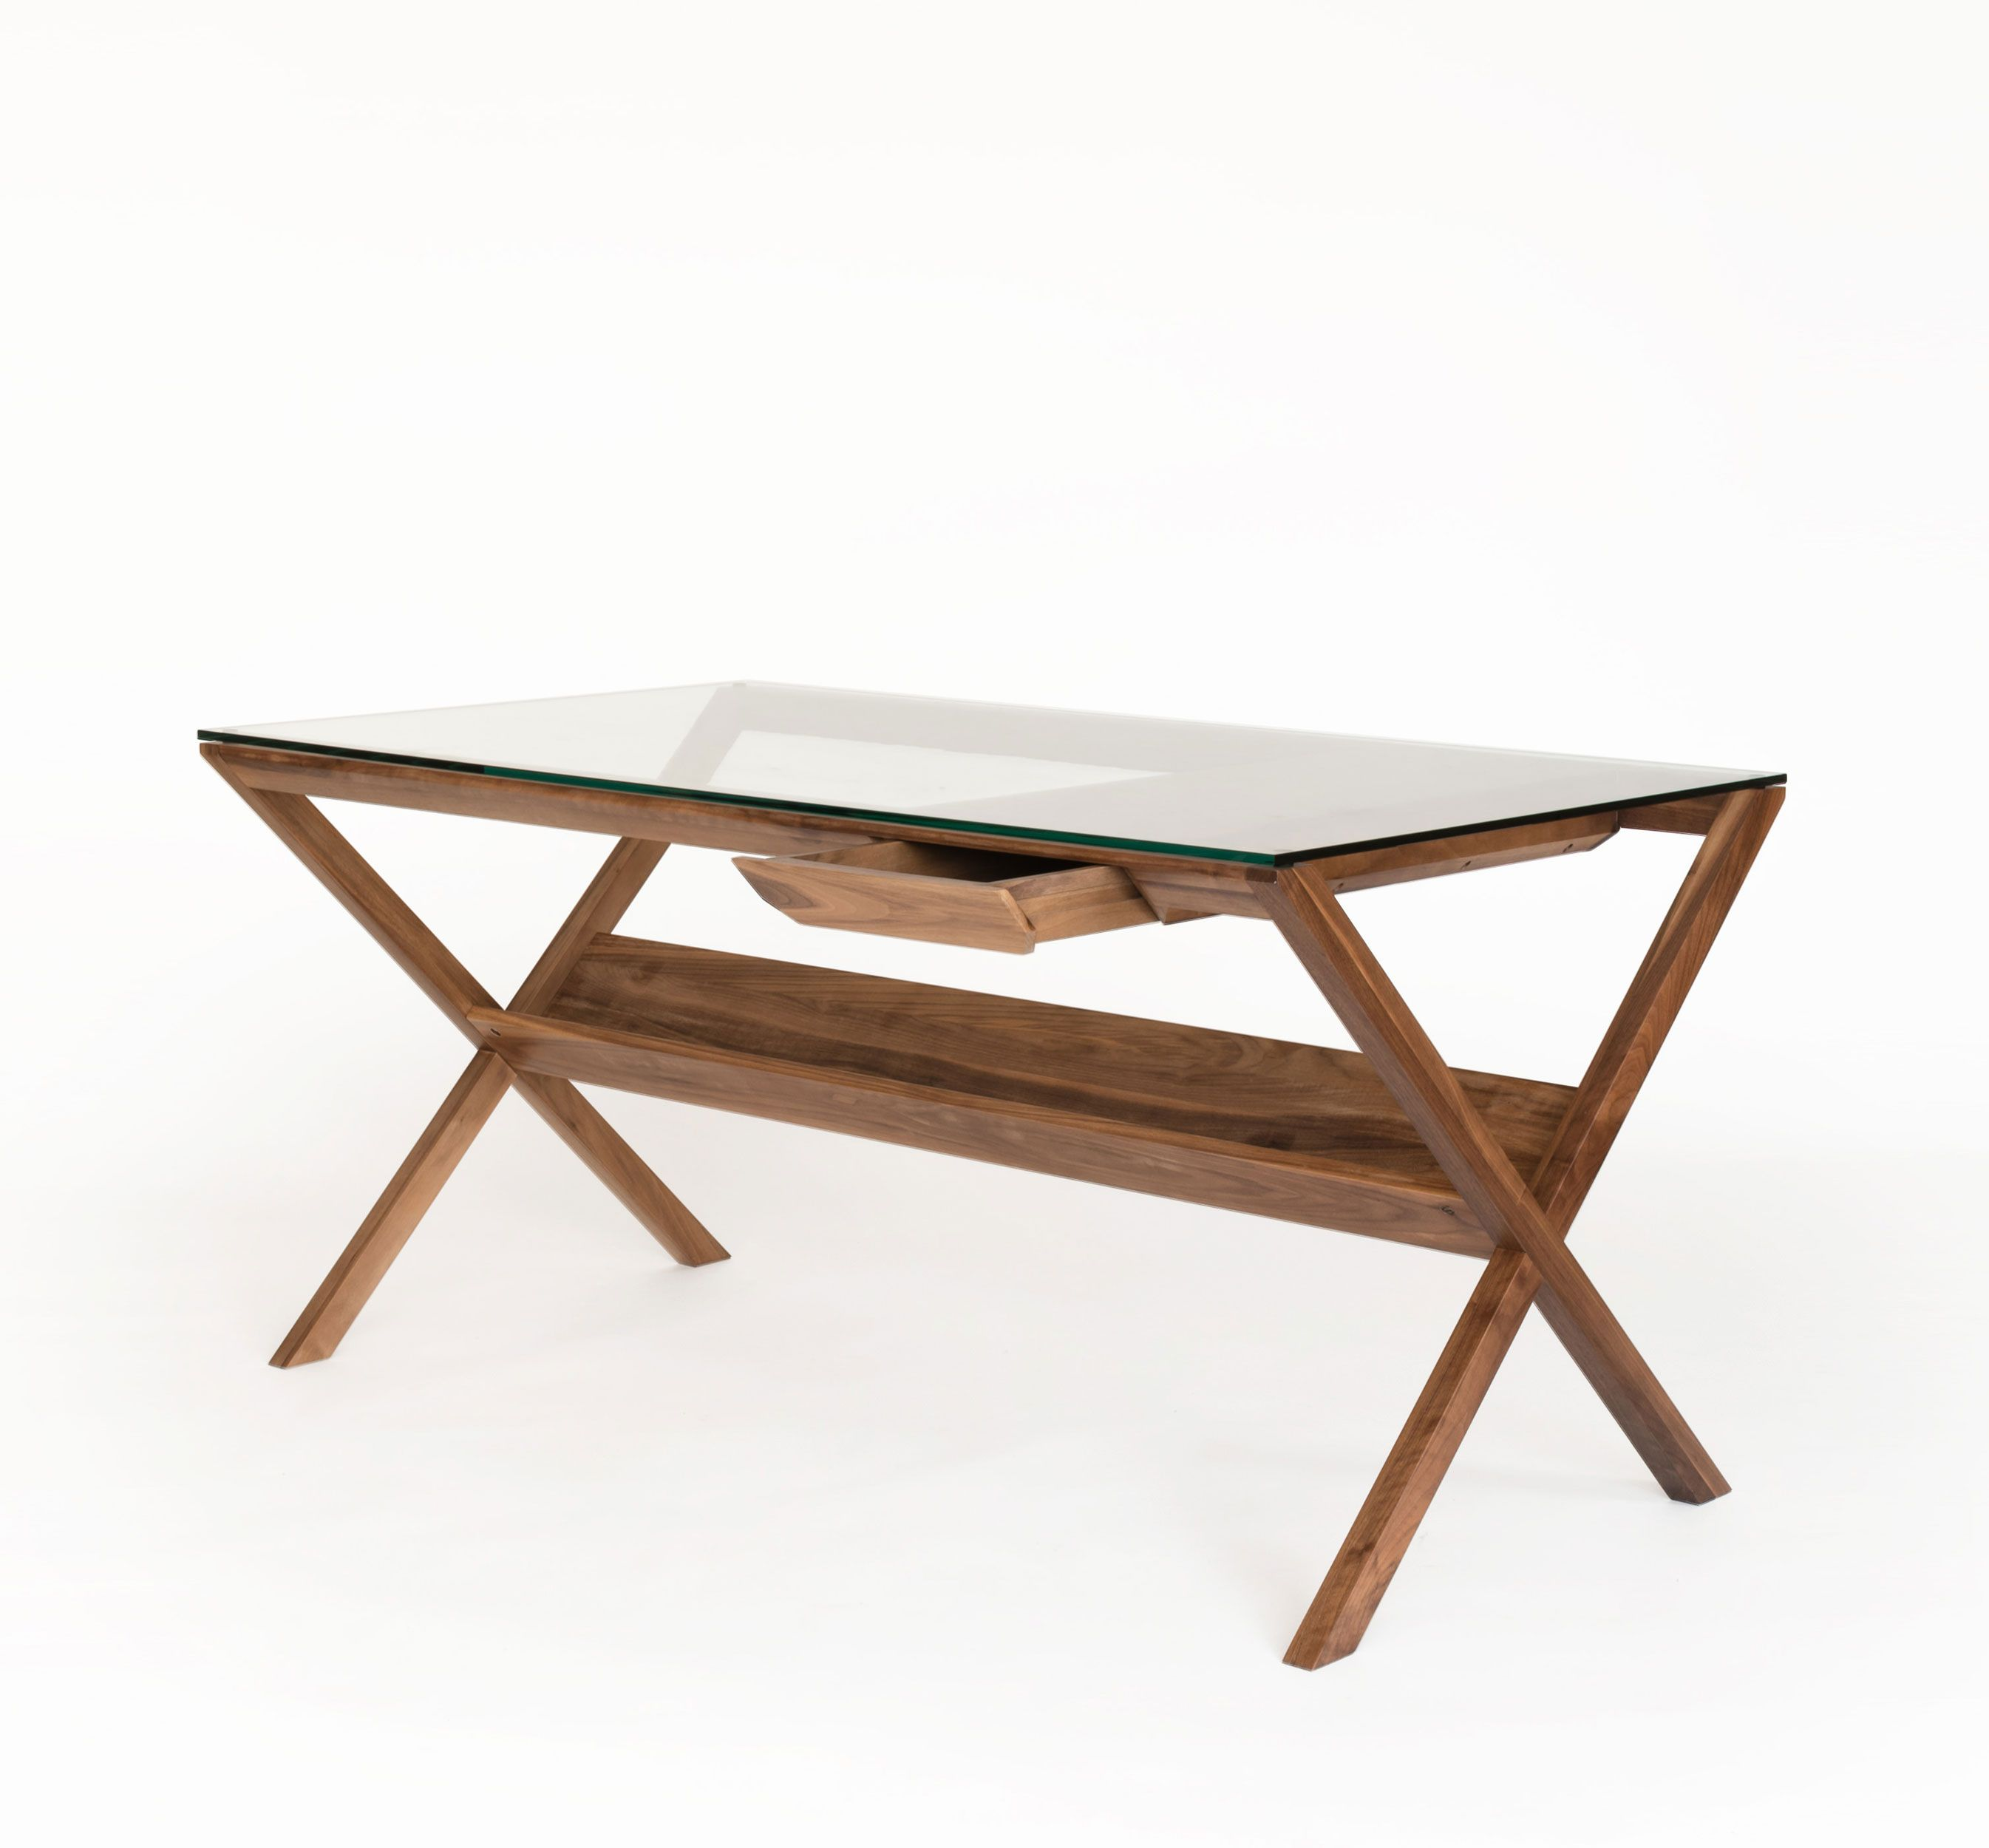 The Covet Desk, Designed By Japanese Born Shin Azumi, Is A Simple, Pictures Gallery